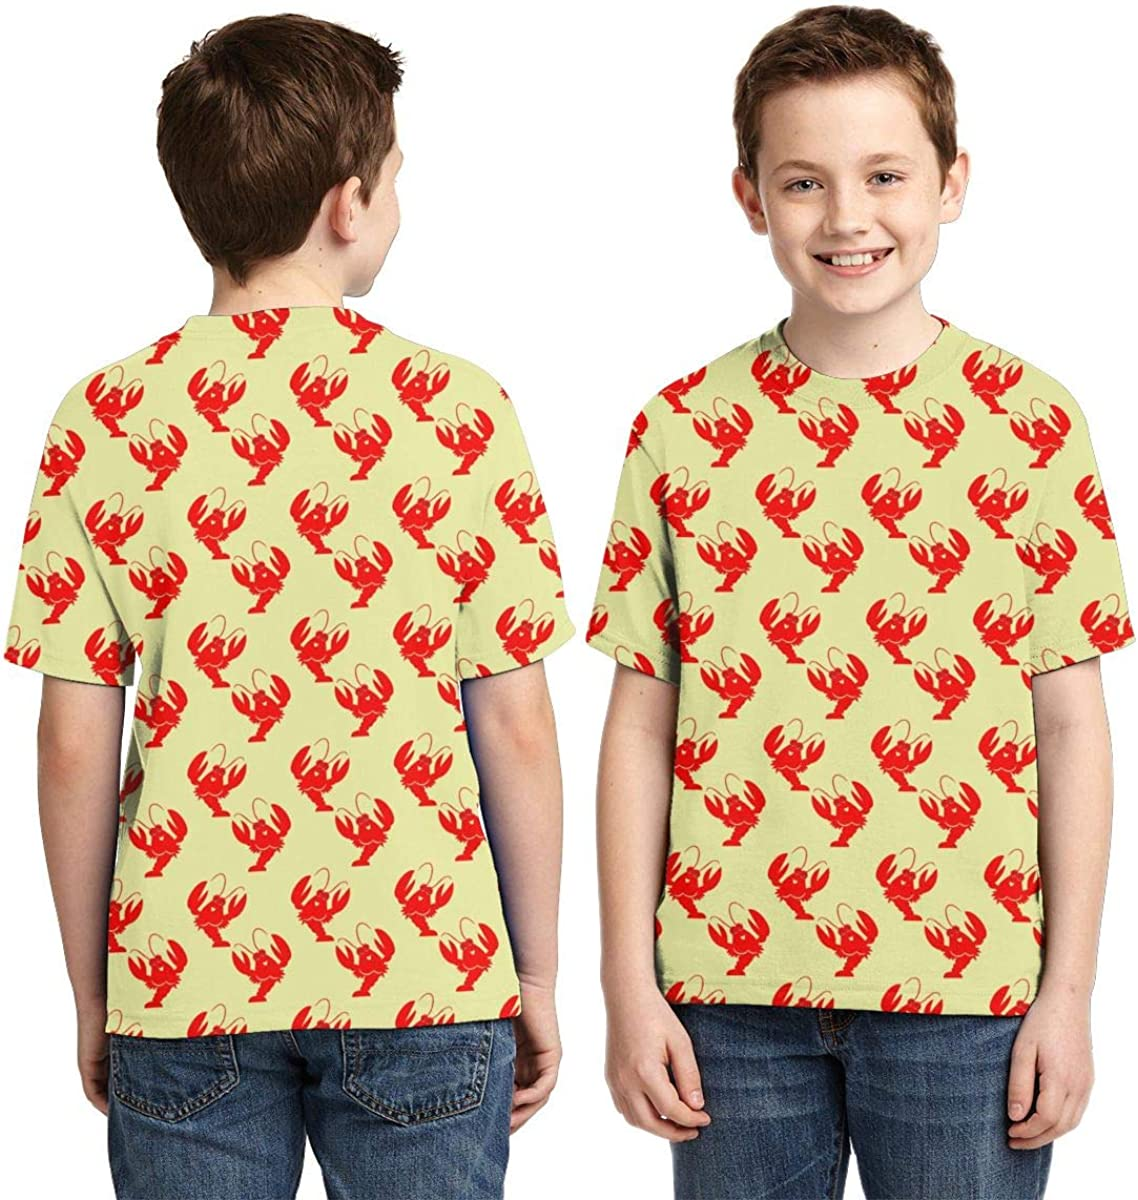 You are My Lobster Pattern Boys Print Graphic Tee Short Sleeve T-Shirt